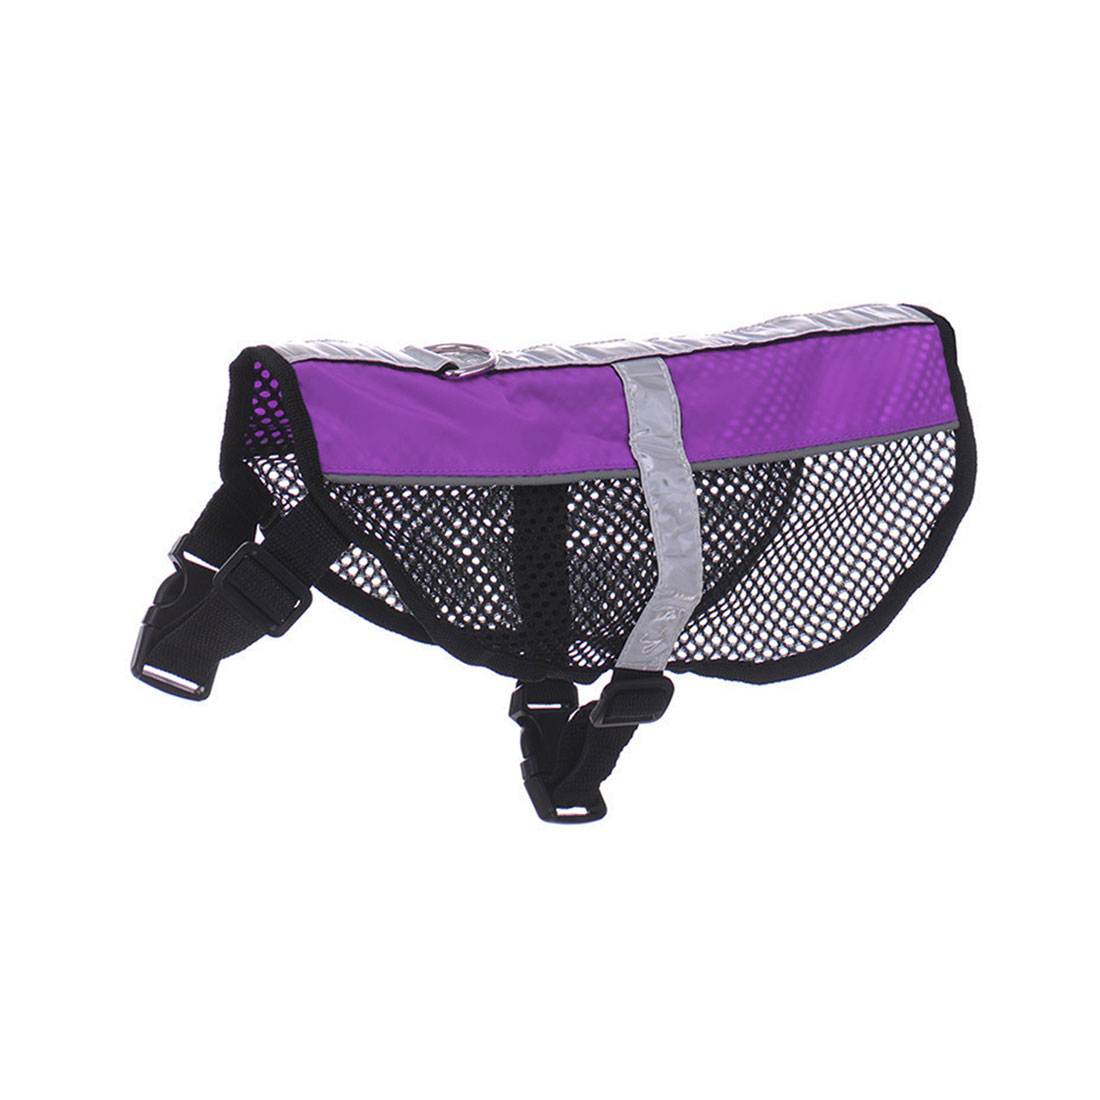 Service Dog Mesh Vest Harness Cool Comfort Nylon High Visibility Safety Jacket Purple S